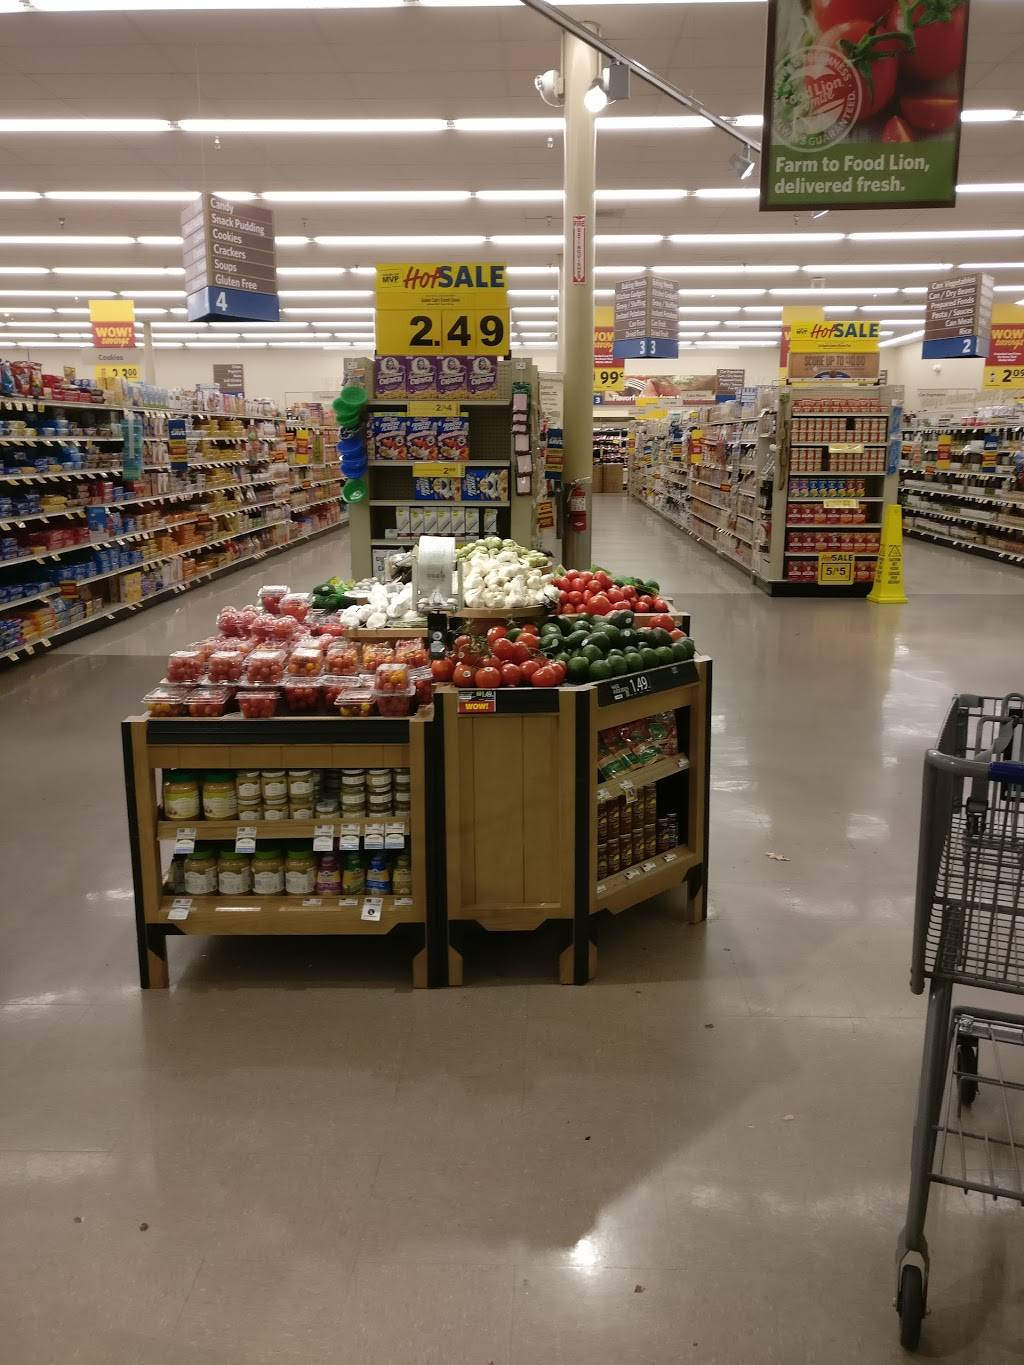 Food Lion - store    Photo 6 of 10   Address: 1601 Cross Link Rd #1, Raleigh, NC 27610, USA   Phone: (919) 807-1395